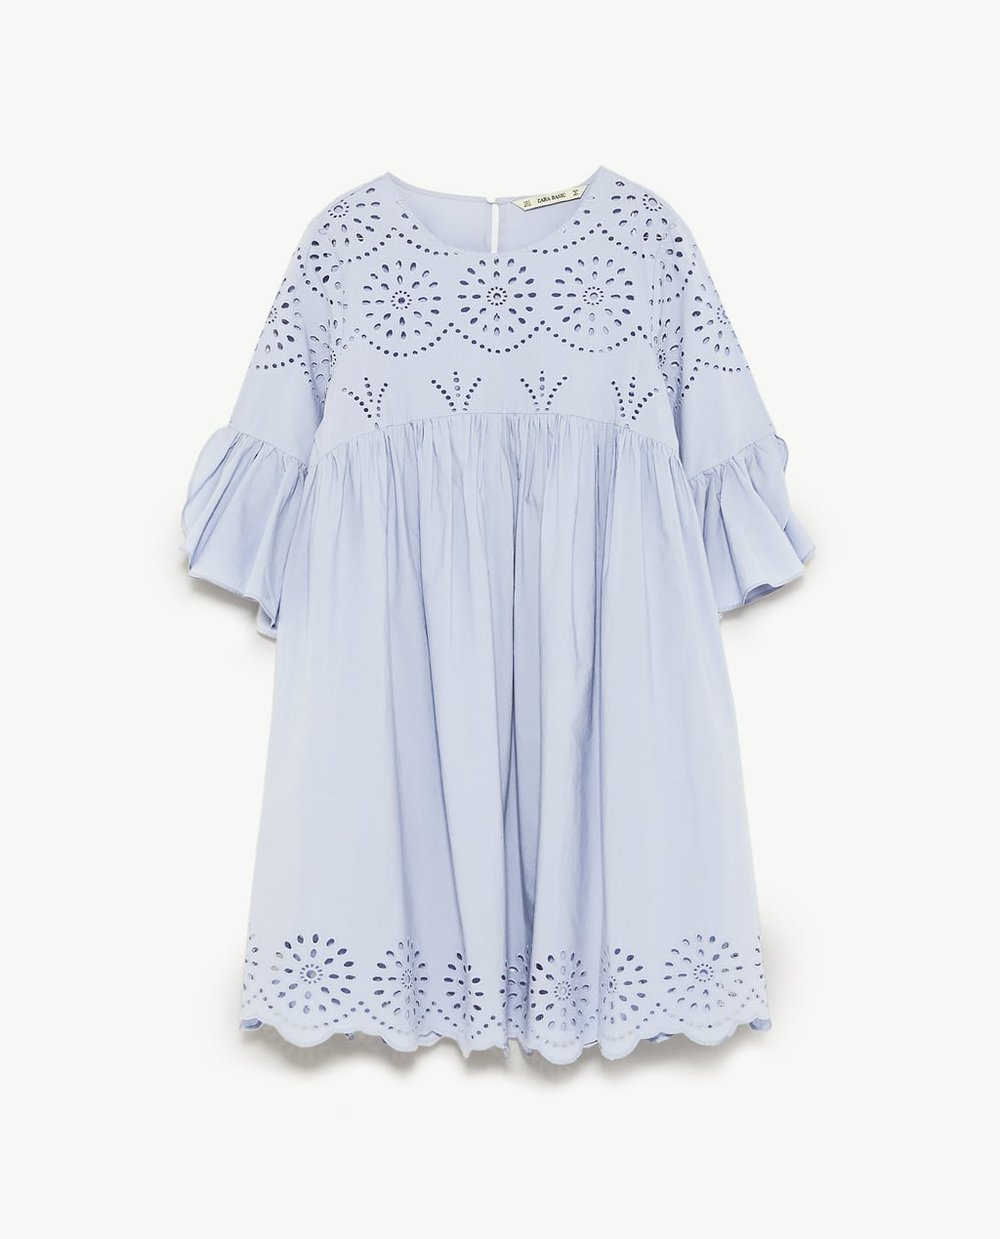 - Lightweight dress with a round neckline and short asymmetric sleeves with wide ruffle trims. Embroidered perforations on the front and hem. Buttoned opening in the back.